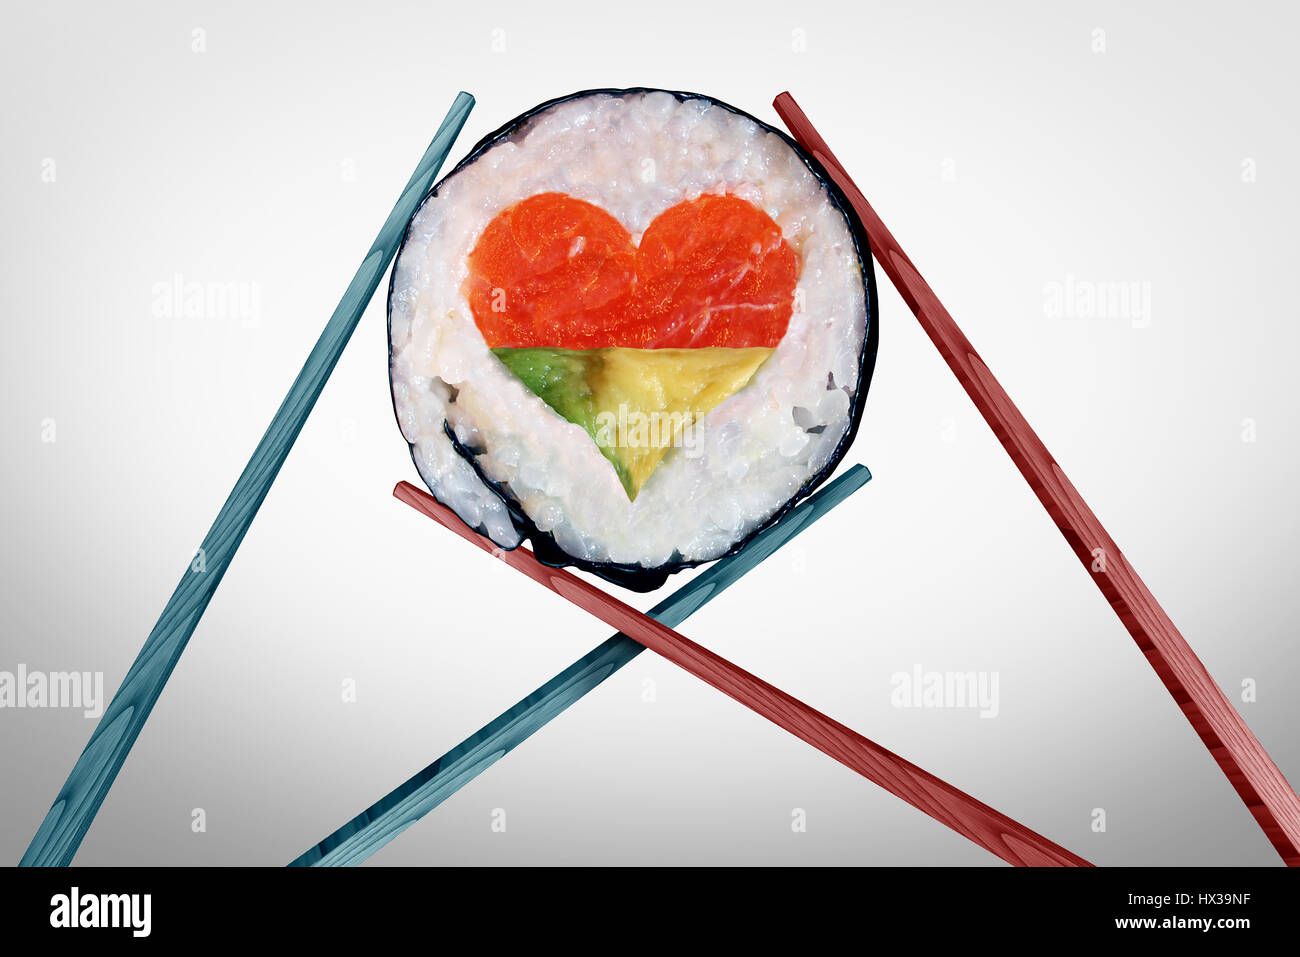 Dinner for two dining and romantic date concept as a couple of chopsticks holding a sushi piece with a love heart - Stock Image